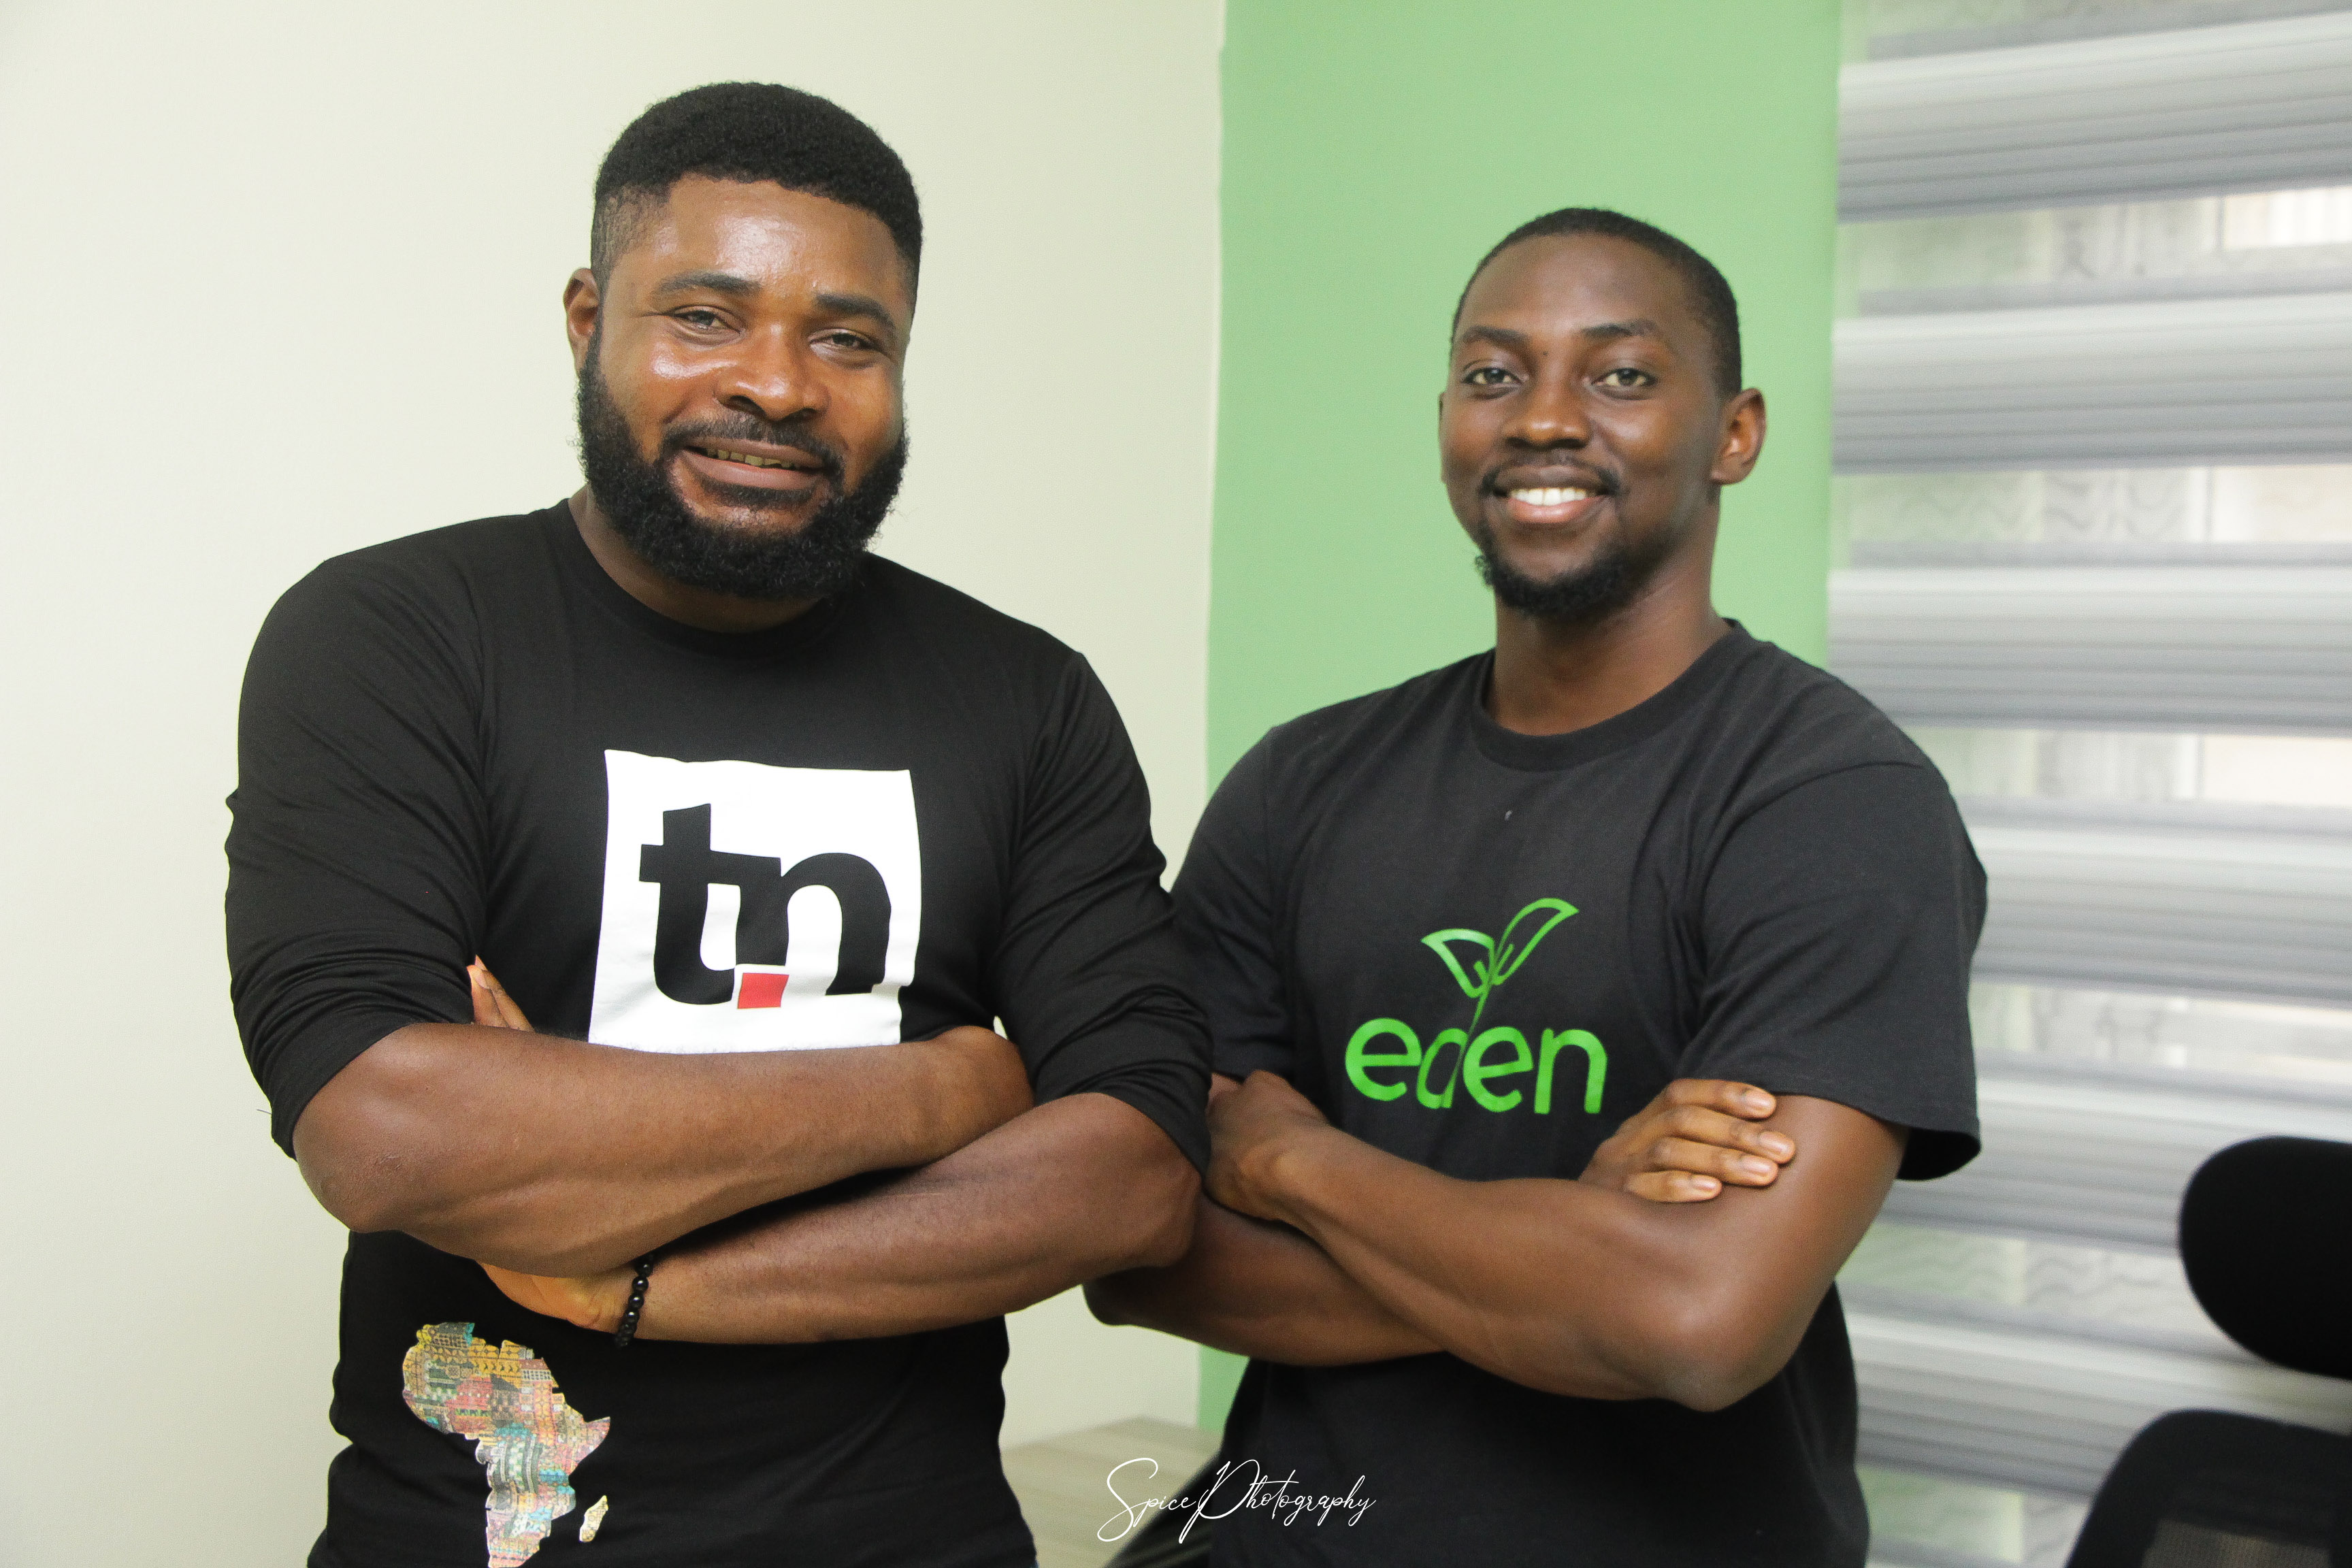 Edenlife, a startup bringing some convenience to Lagos living